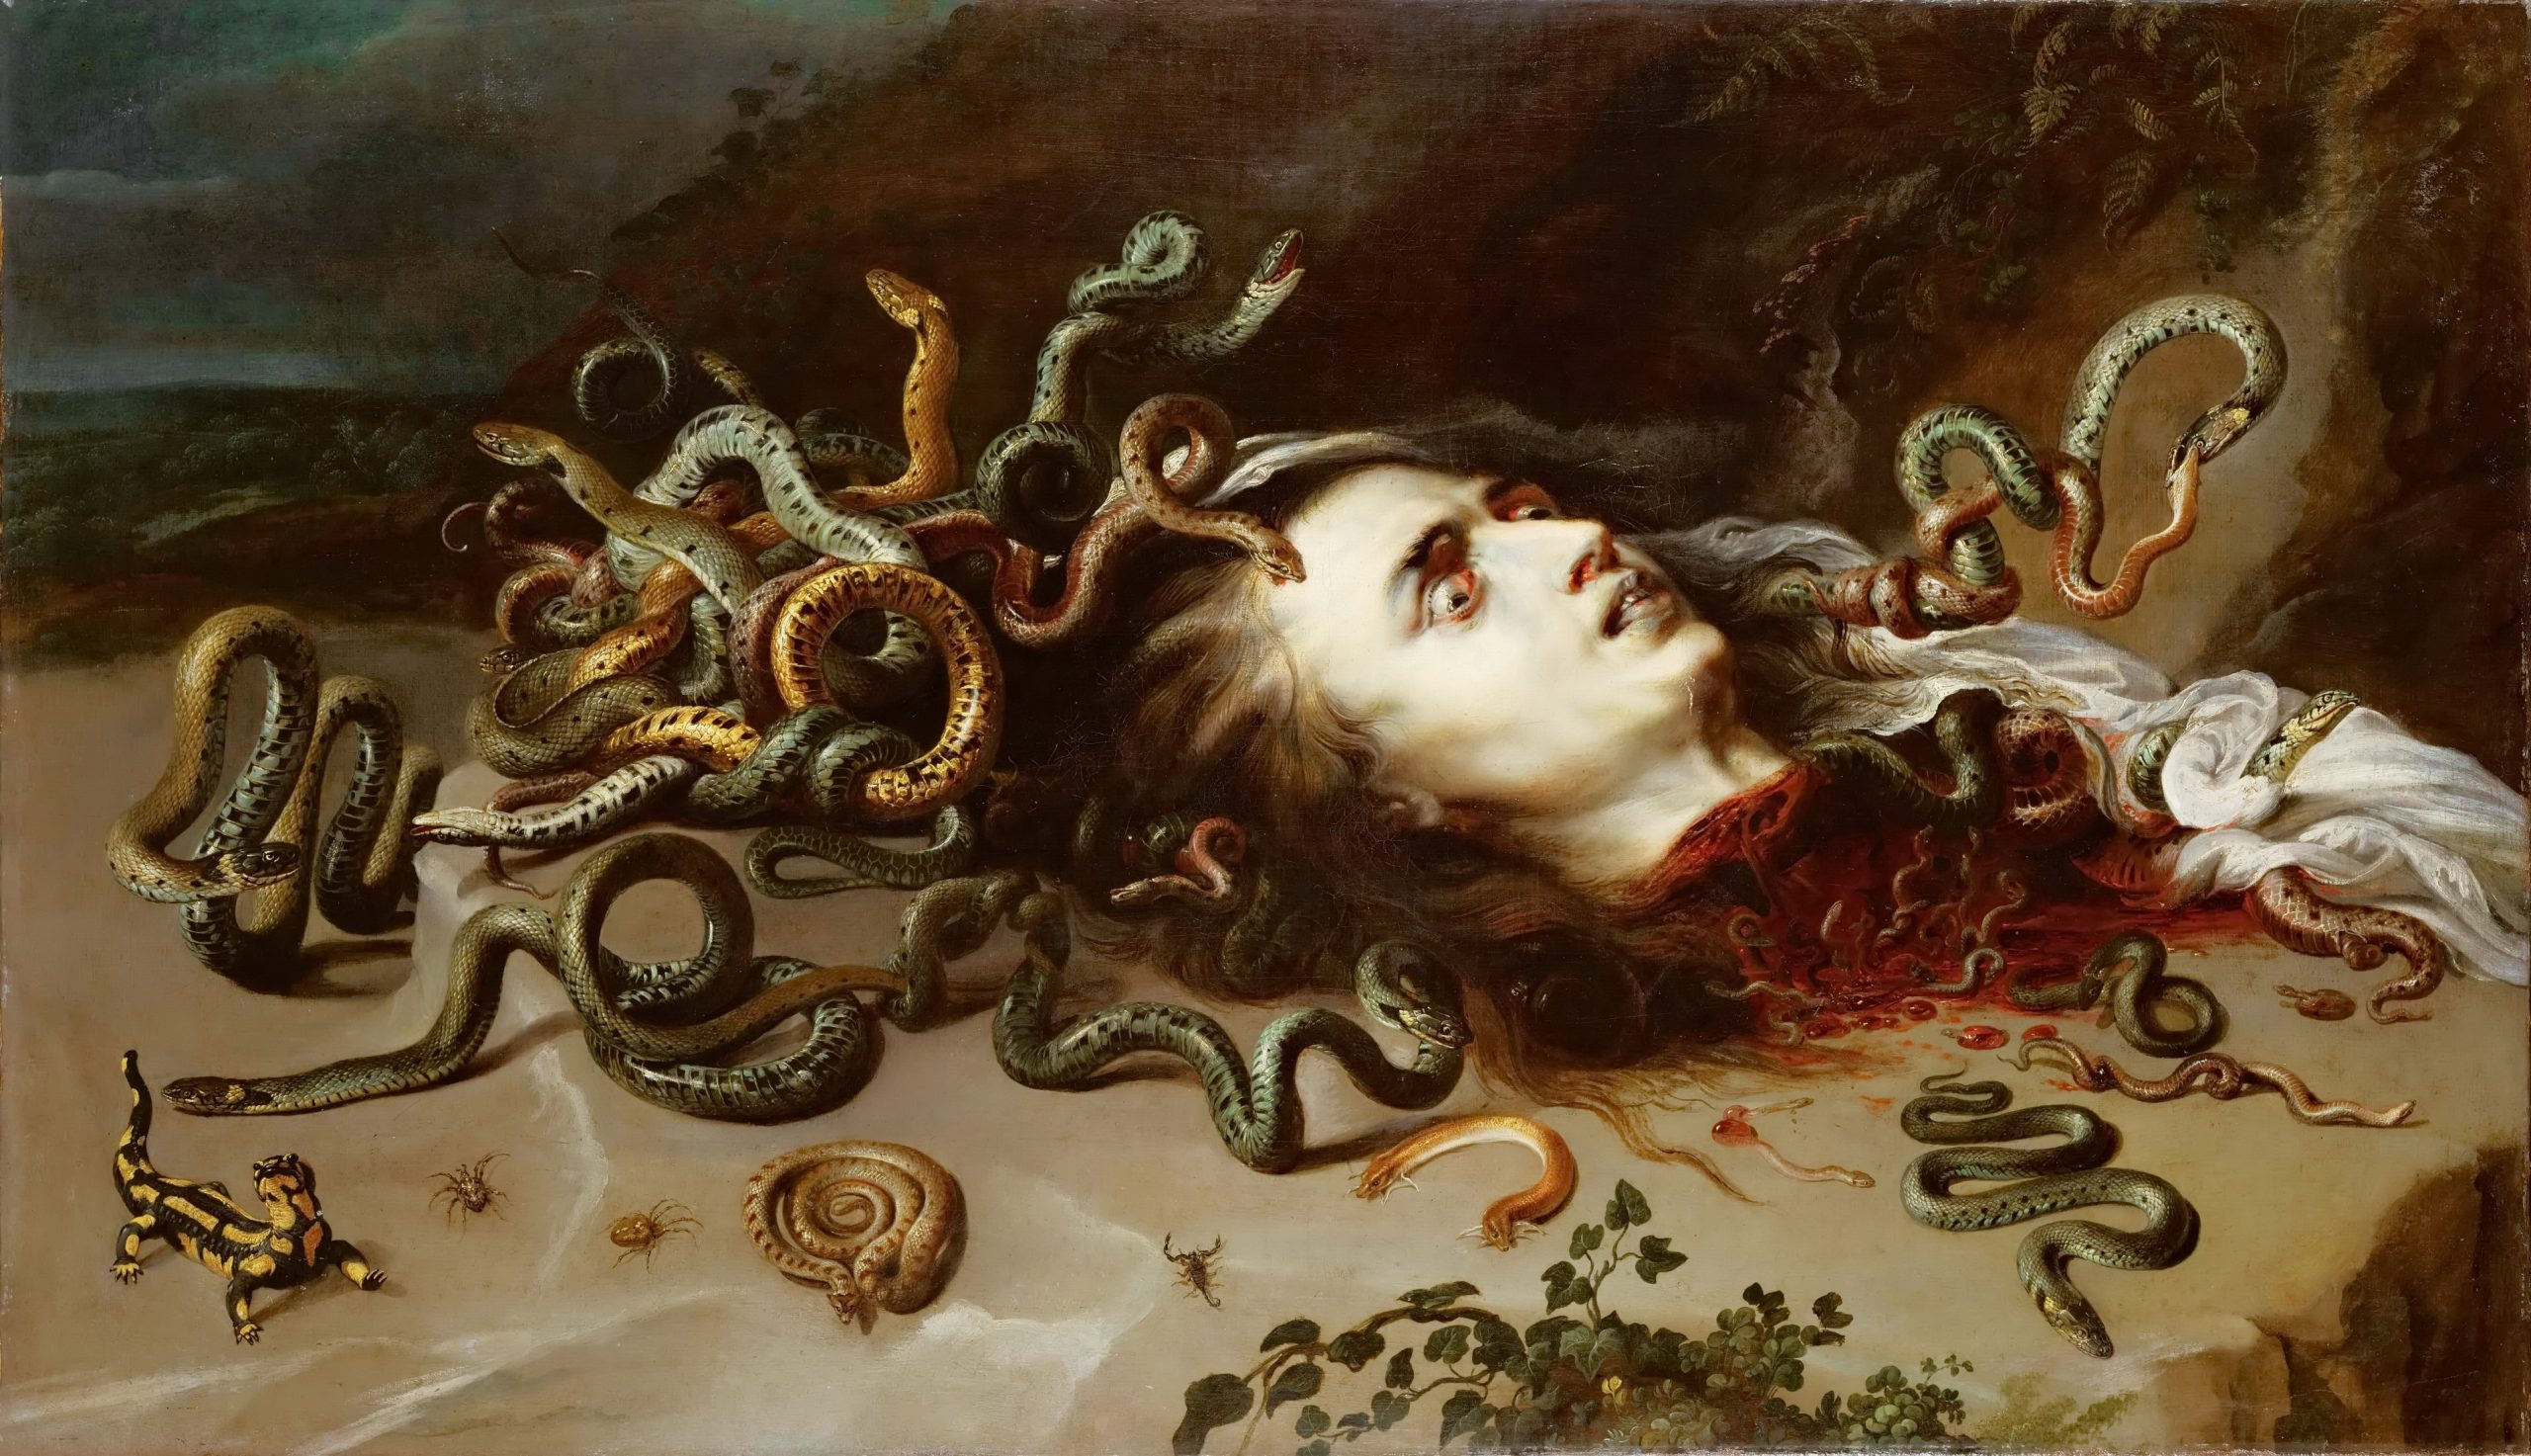 Head of Medusa: :Peter Paul Rubens and Attributed to Frans Snyders